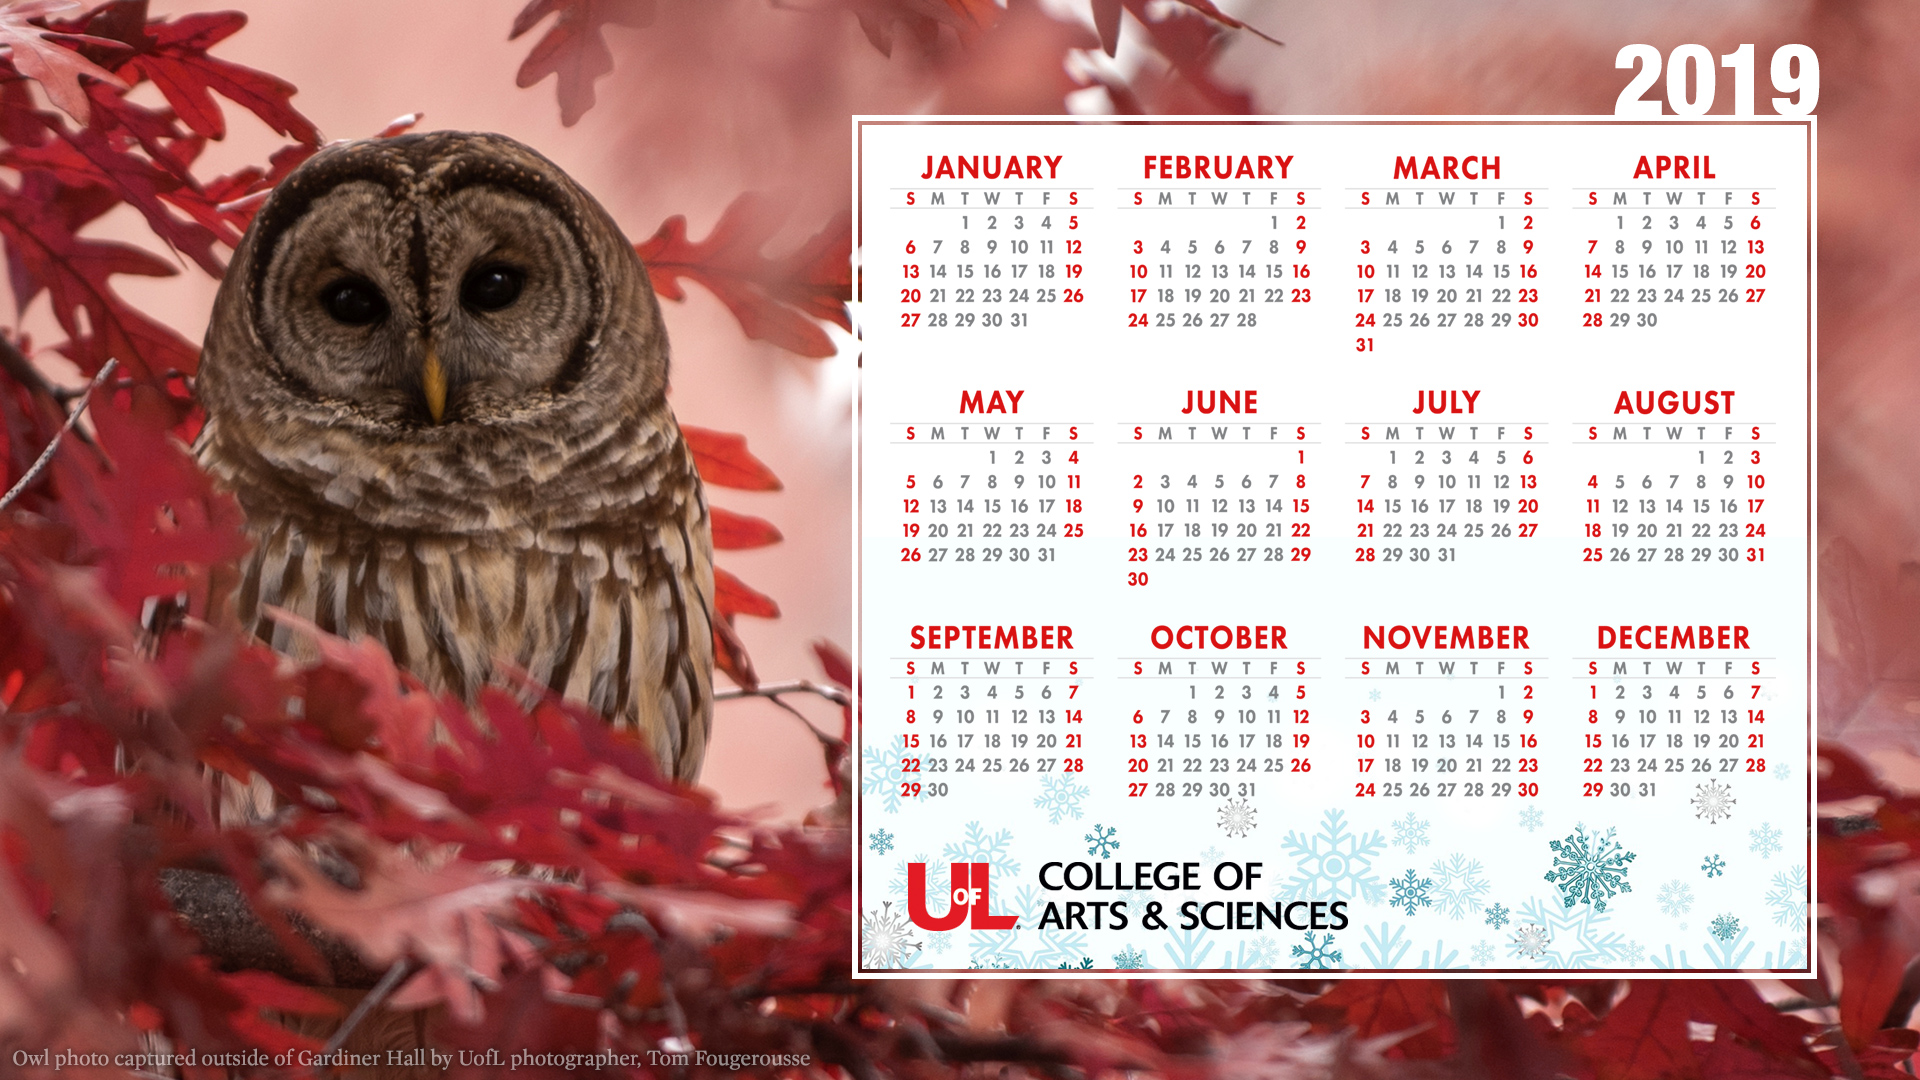 Wallpaper Louisville 2019 Holiday Calendar Desktop Wallpaper College Of Arts Sciences